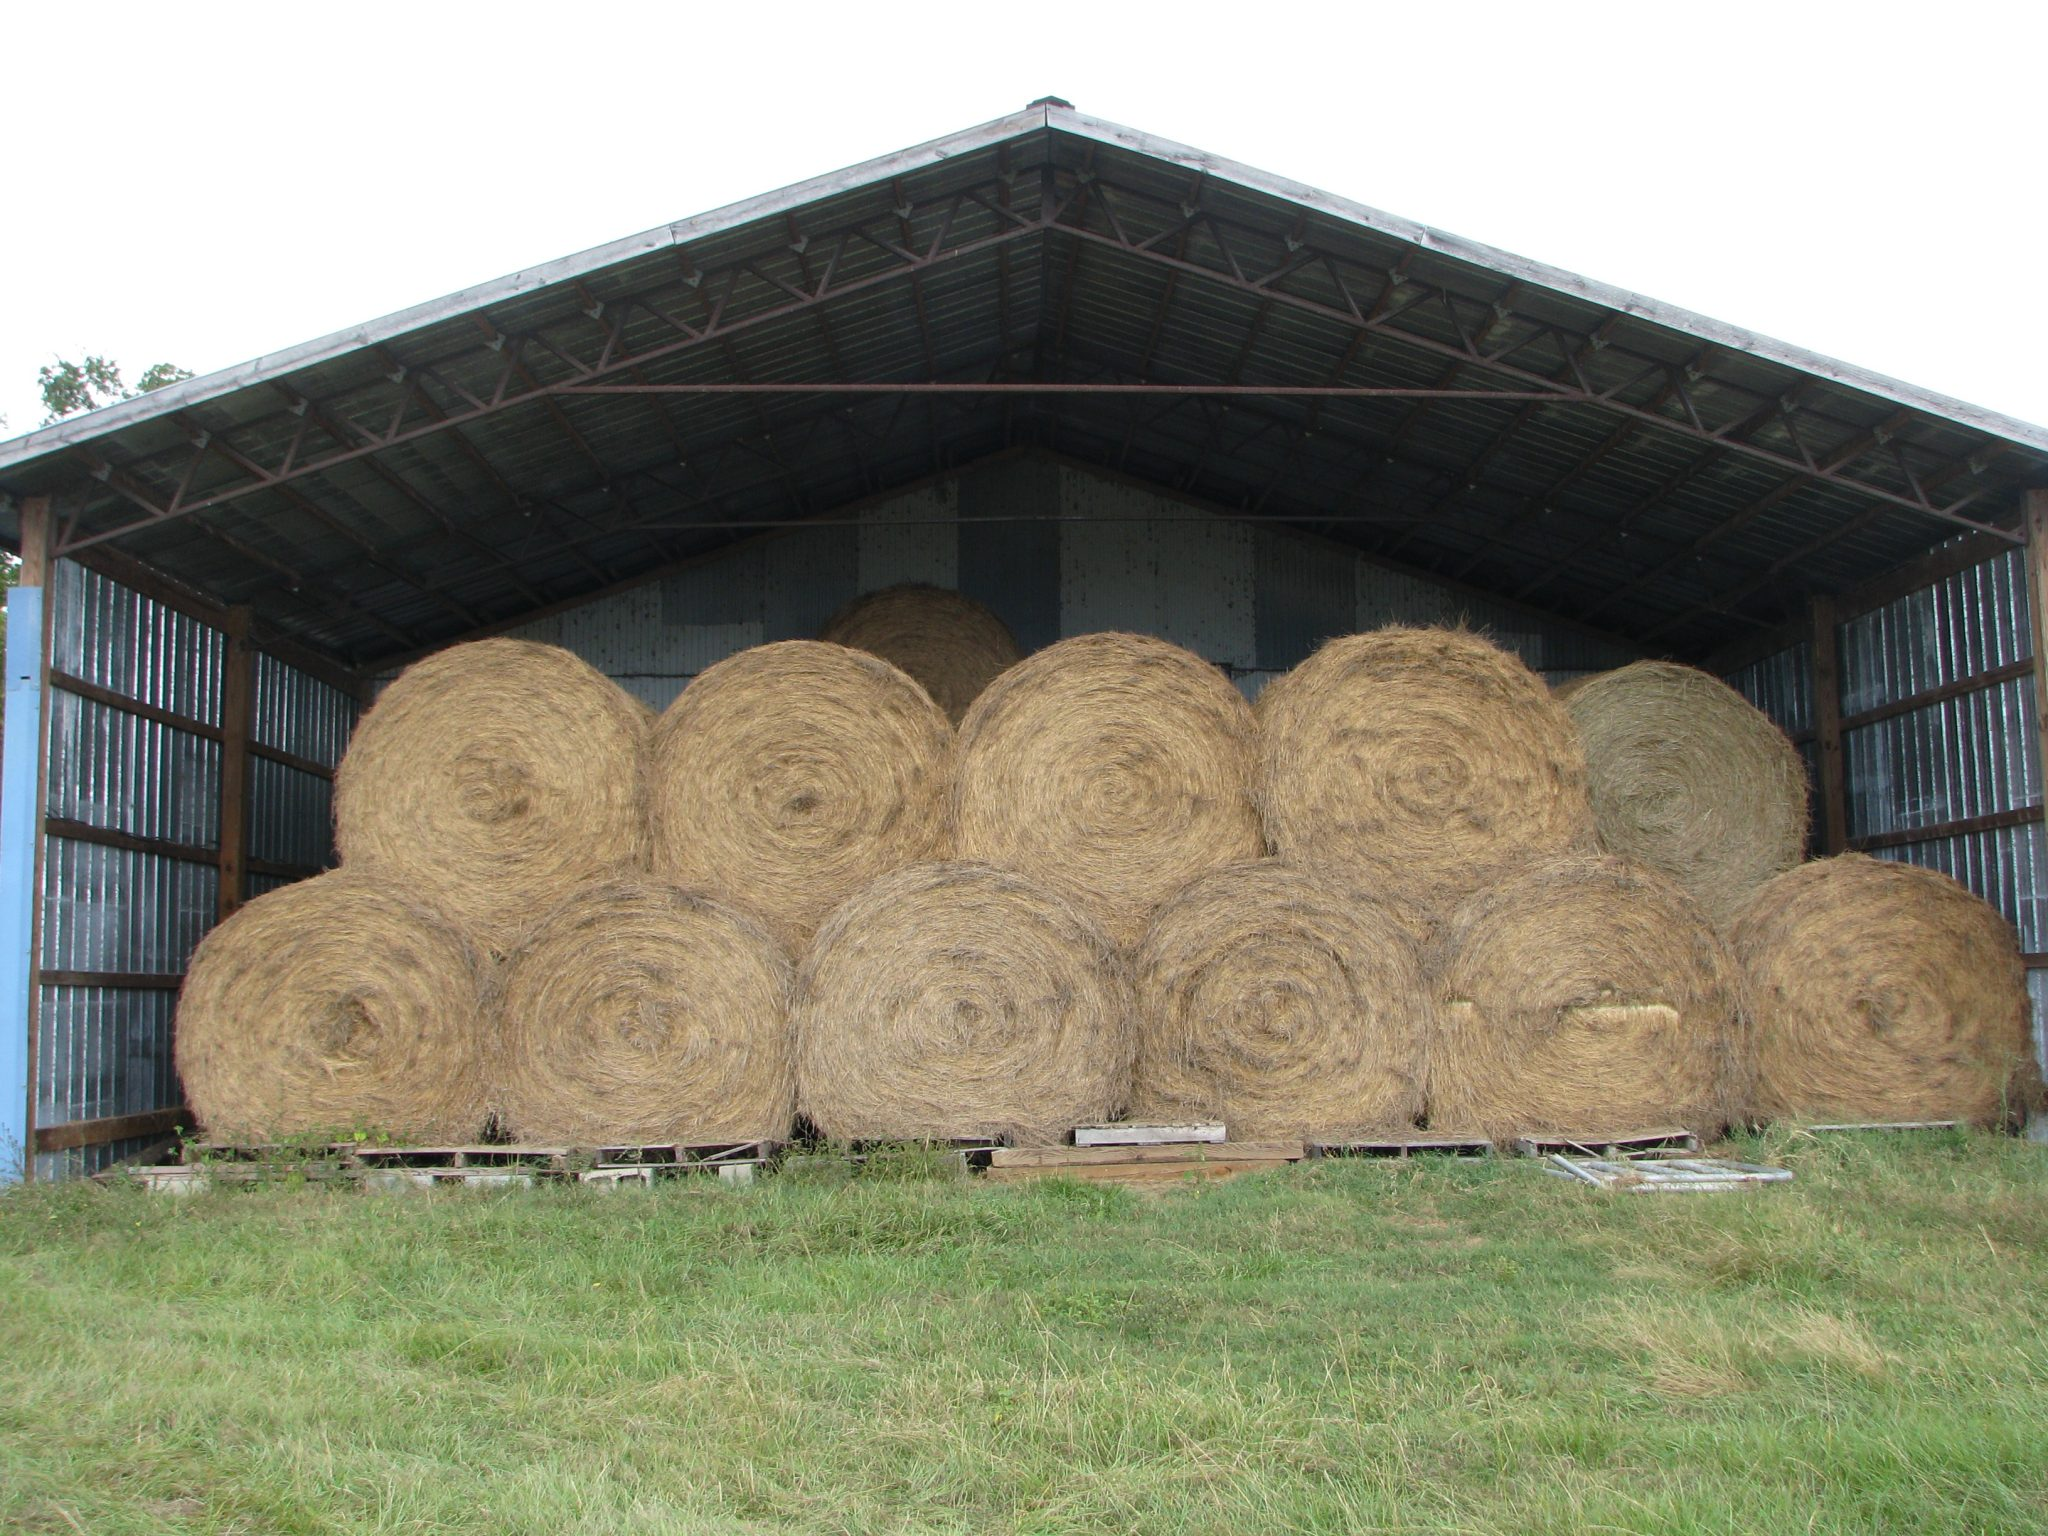 Ideally, hay should be stored off the ground, under a roof, and off limits to animals.